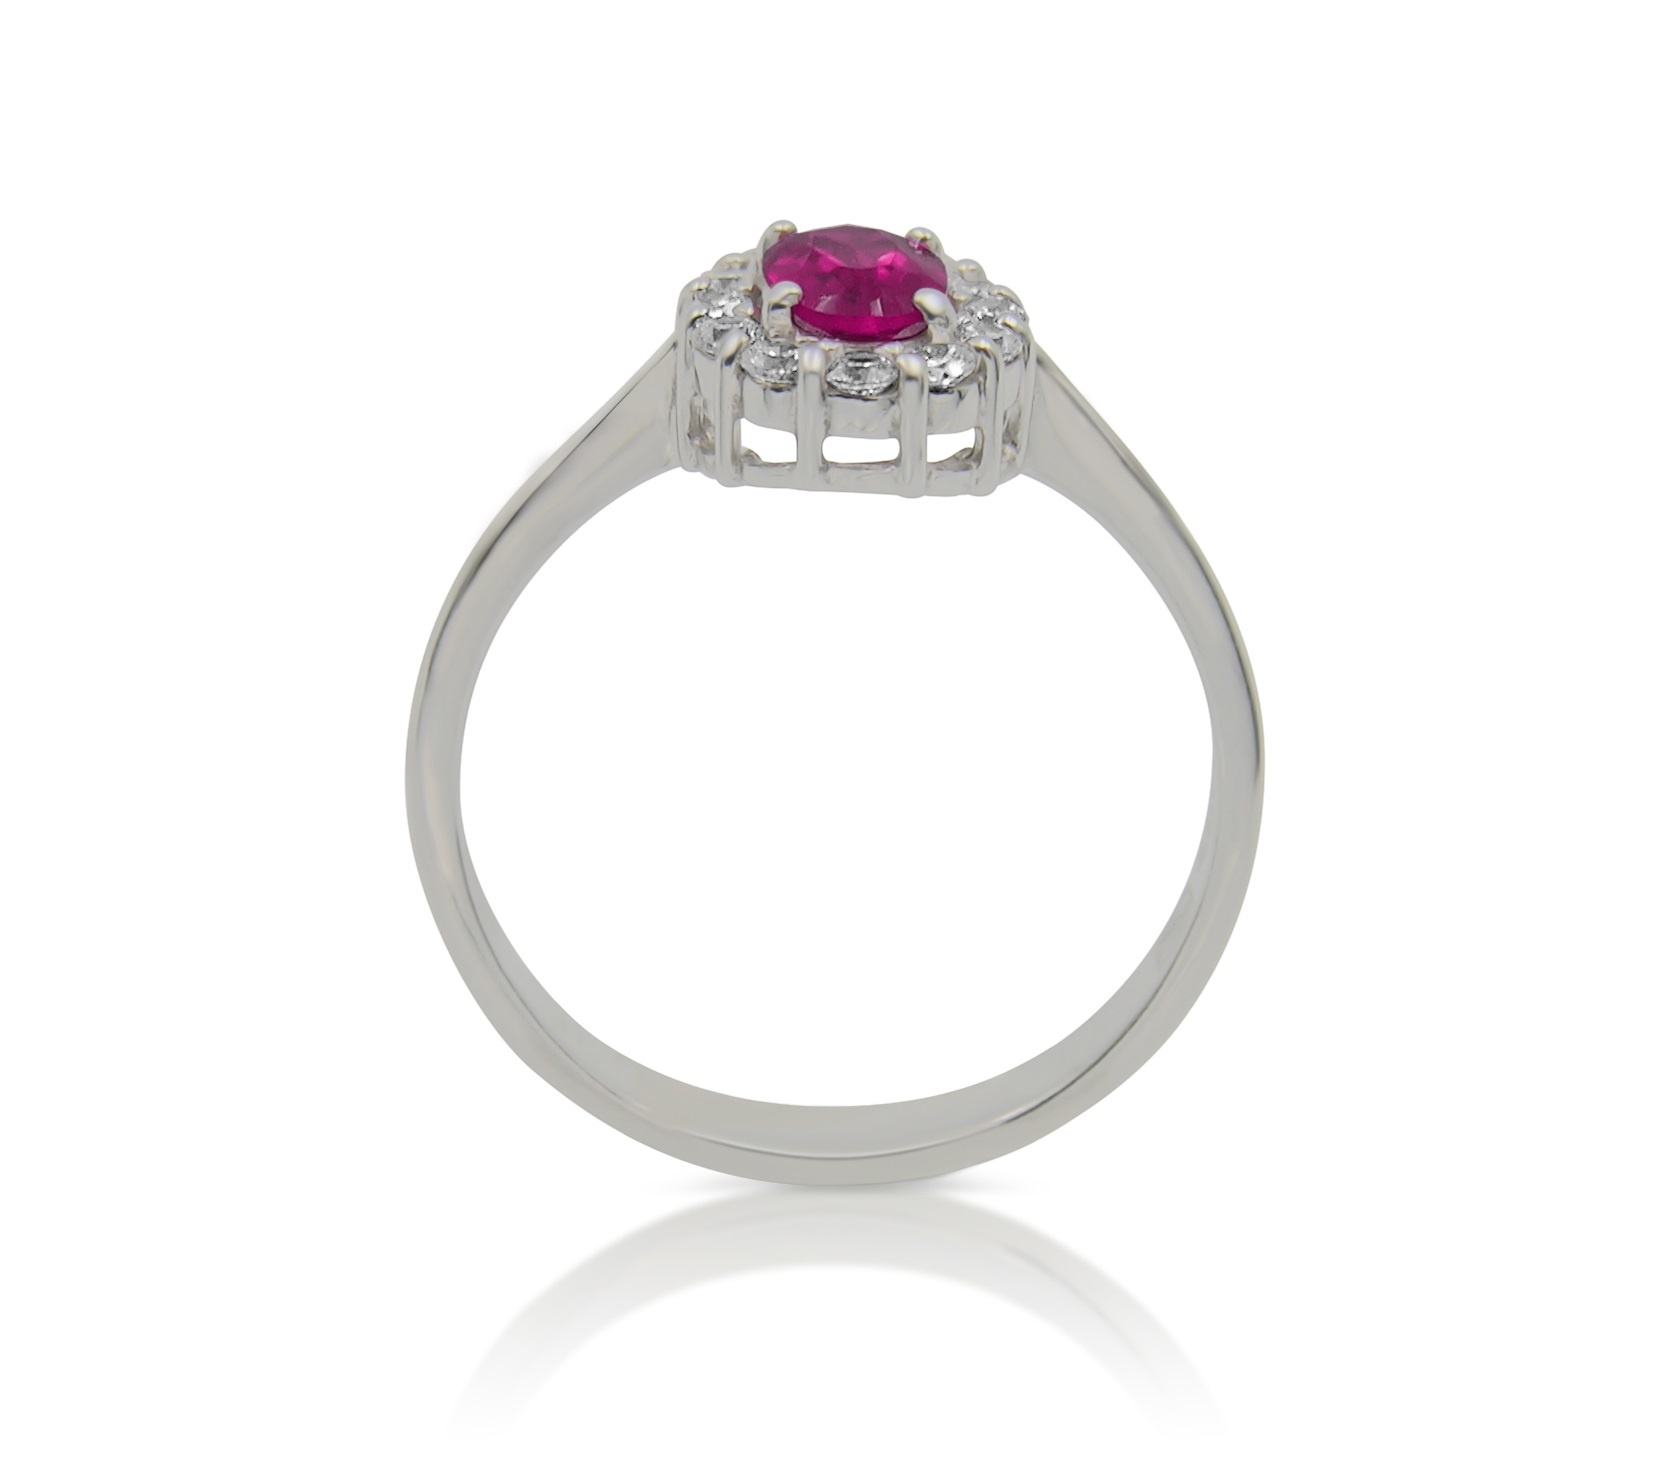 18 kt white gold engagement ring with red & white zirconia